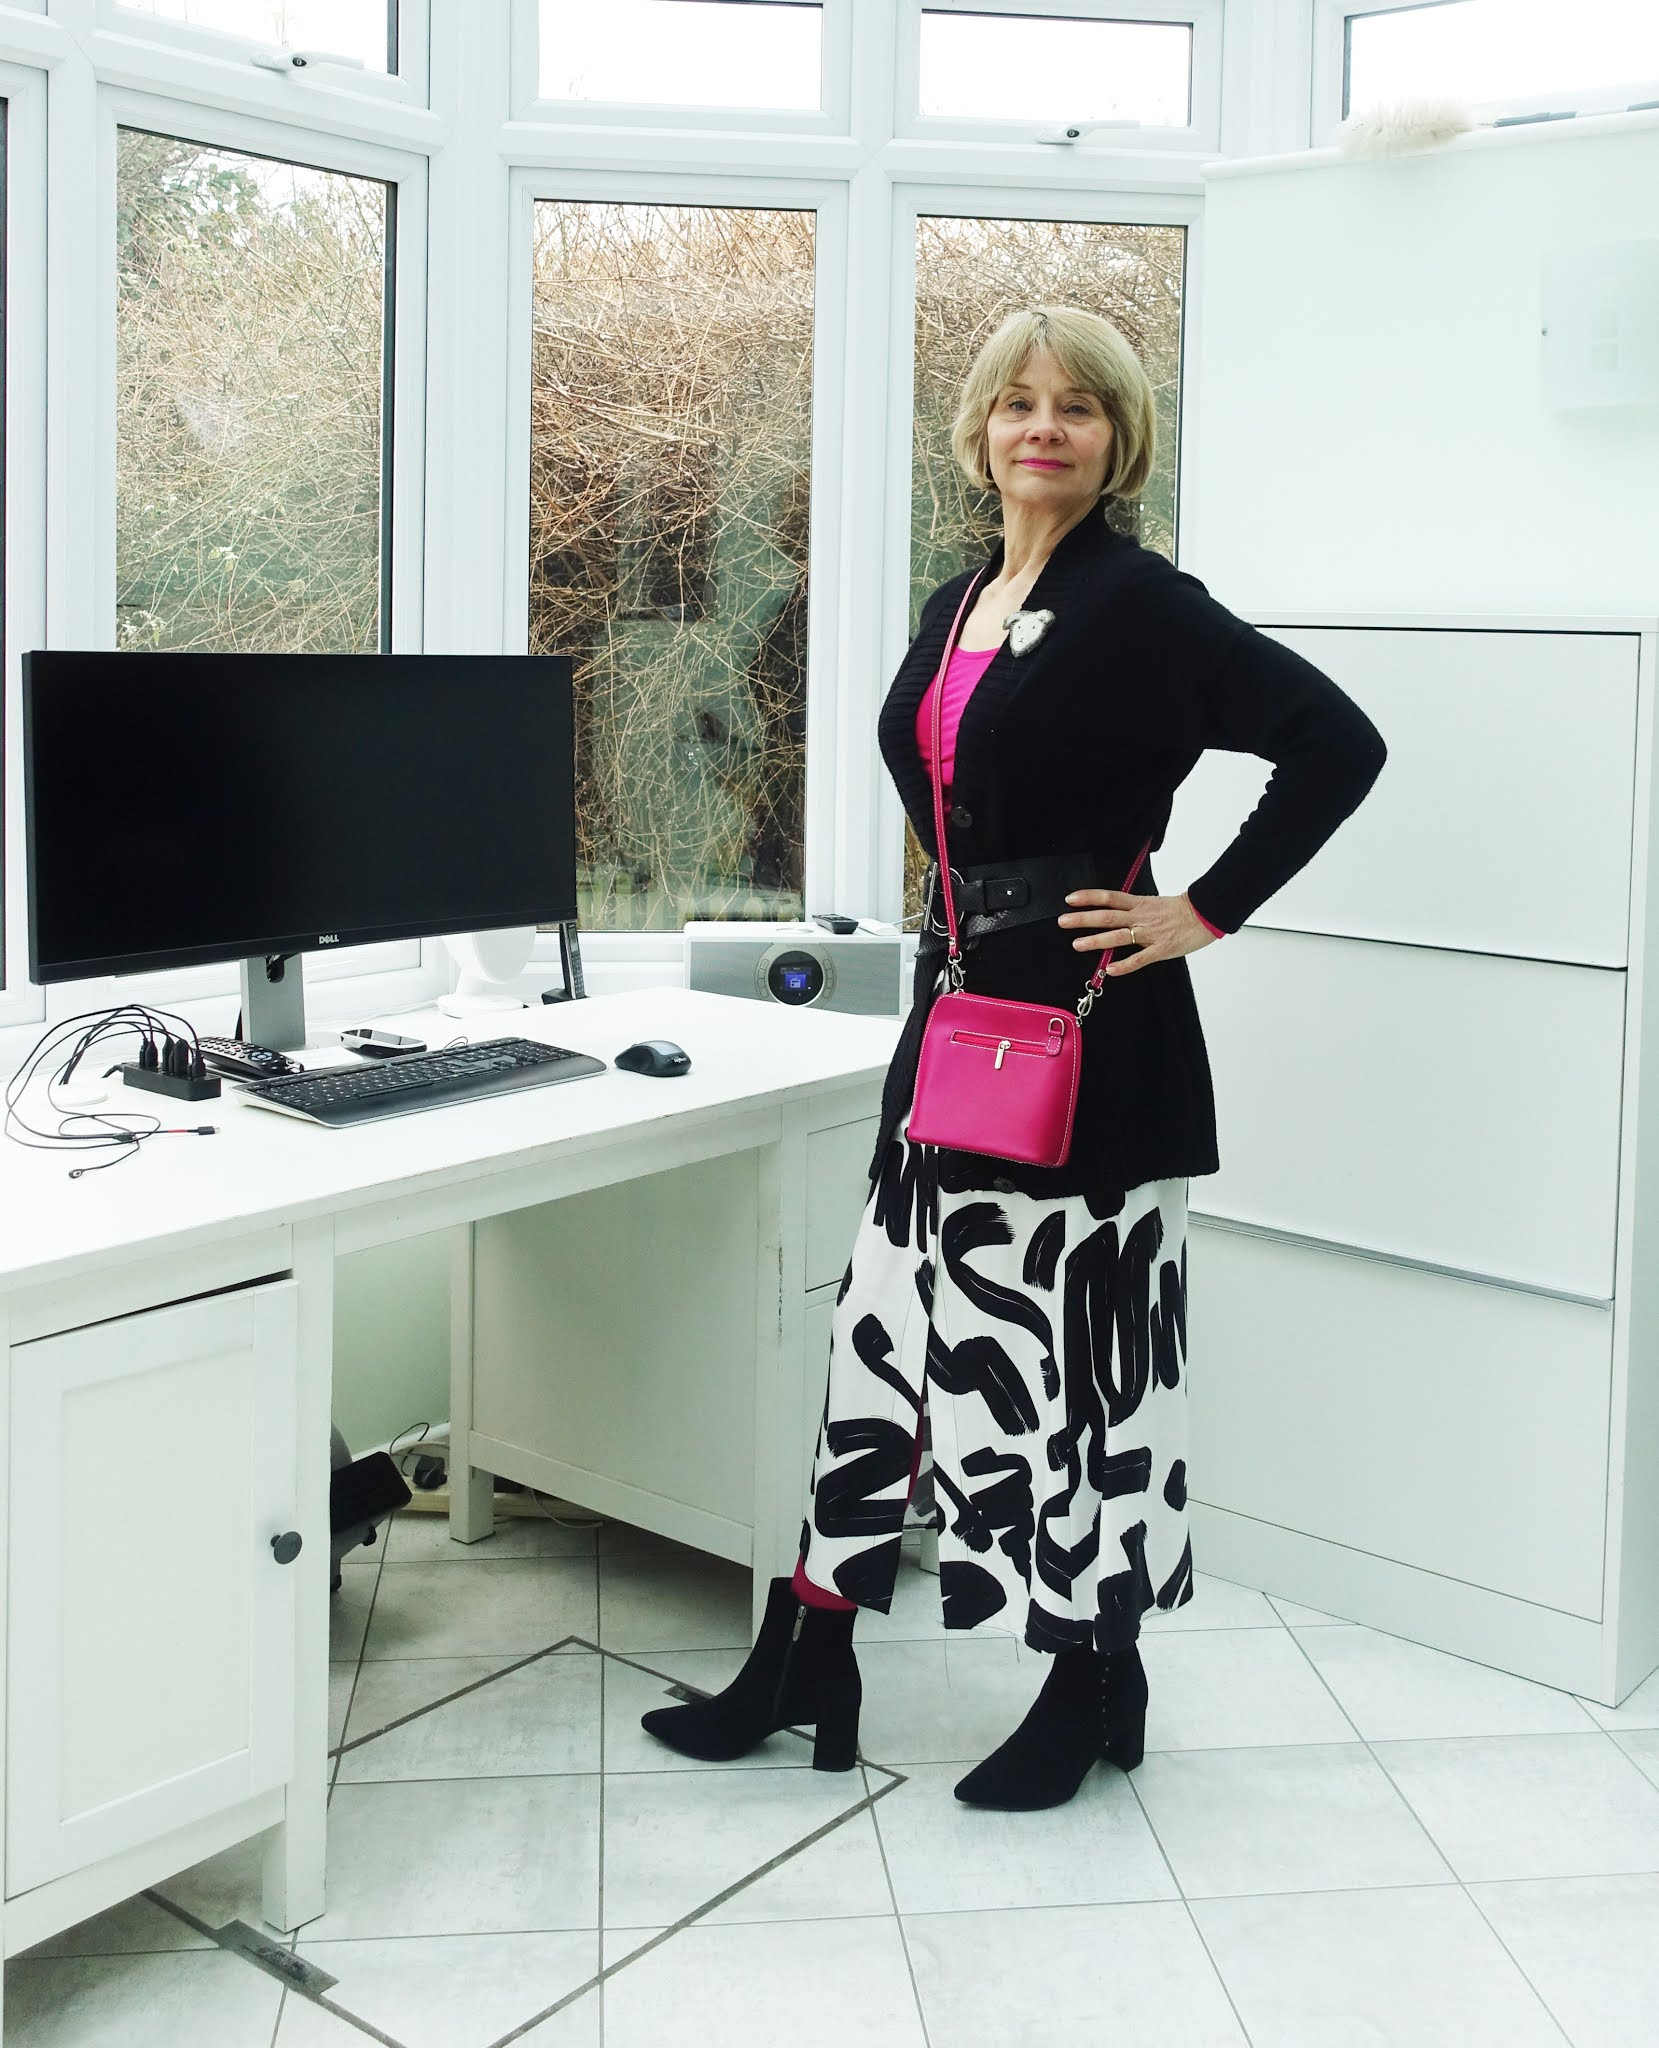 Black and fuchsia styled by a bright spring/winter, Is This Mutton blogger Gail Hanlon